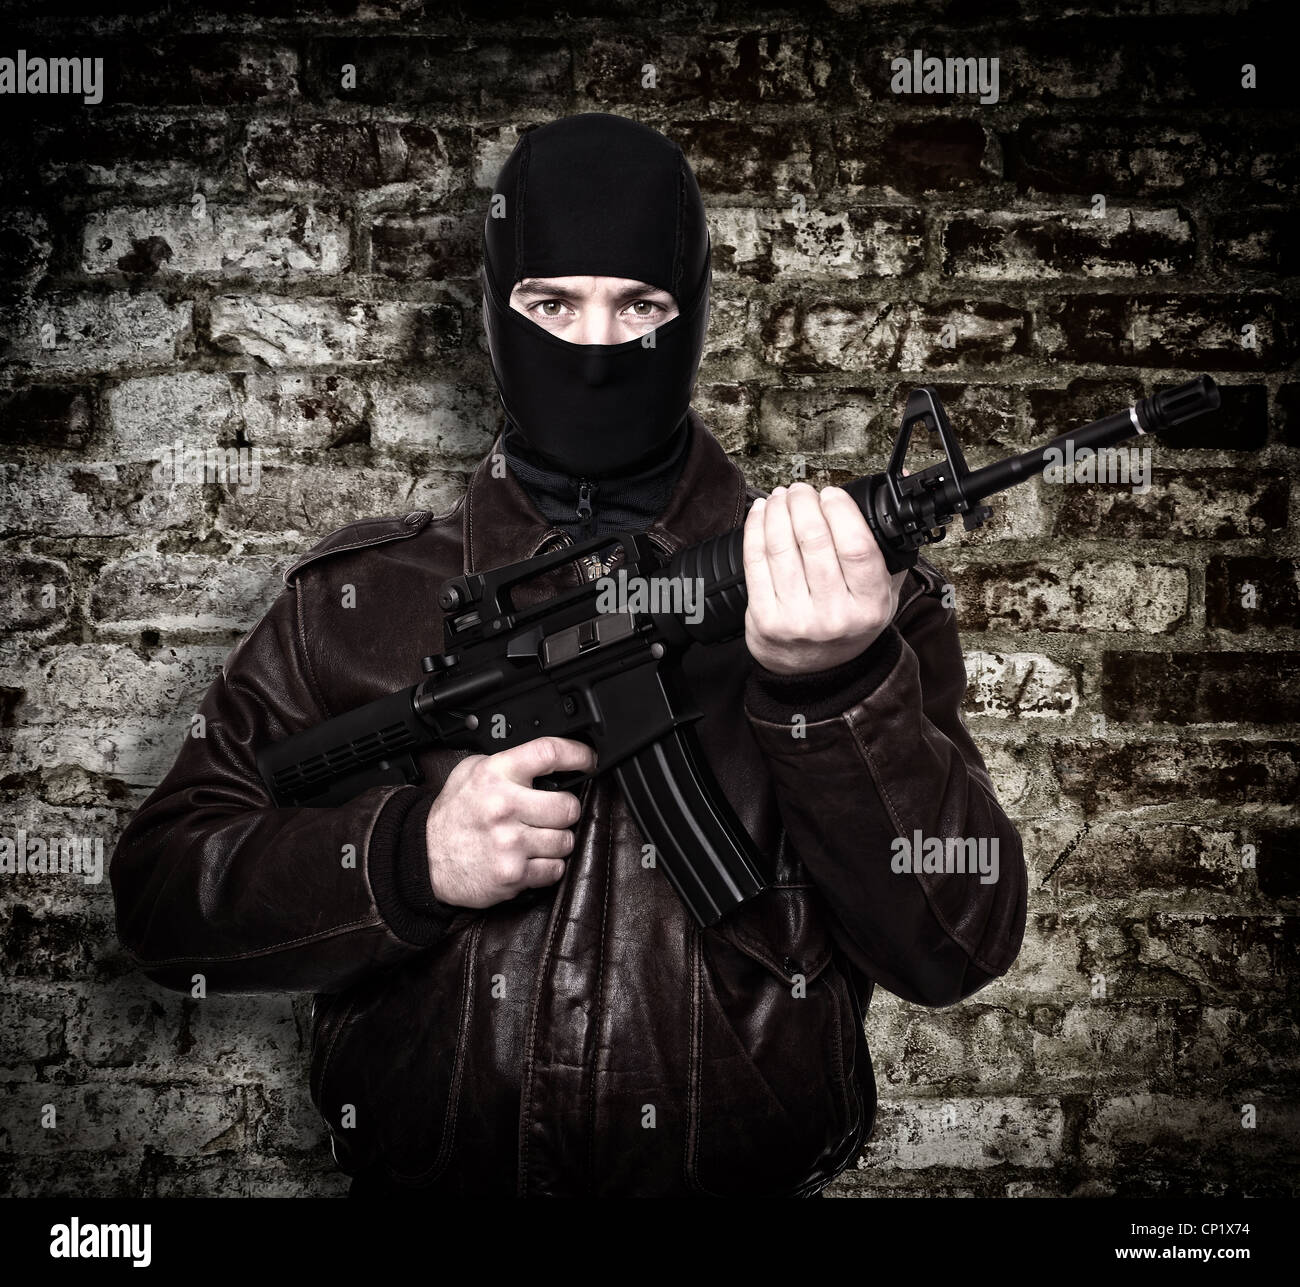 portrait of terrorist with automatic rifle - Stock Image